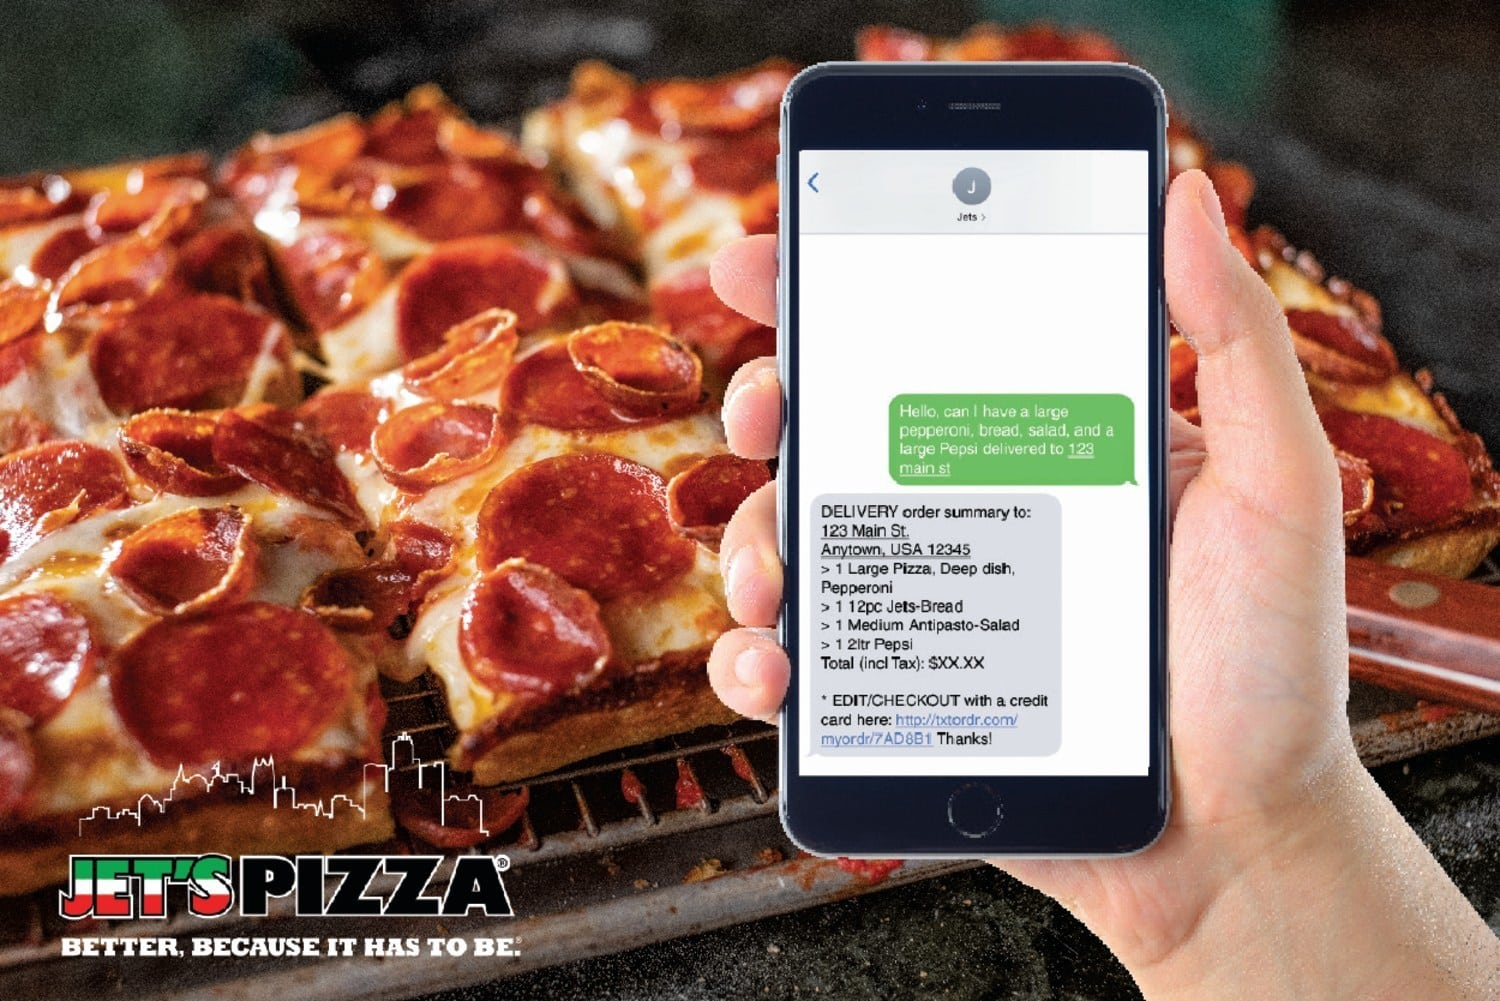 Jet's Pizza Introduces New Text-to-Order Technology